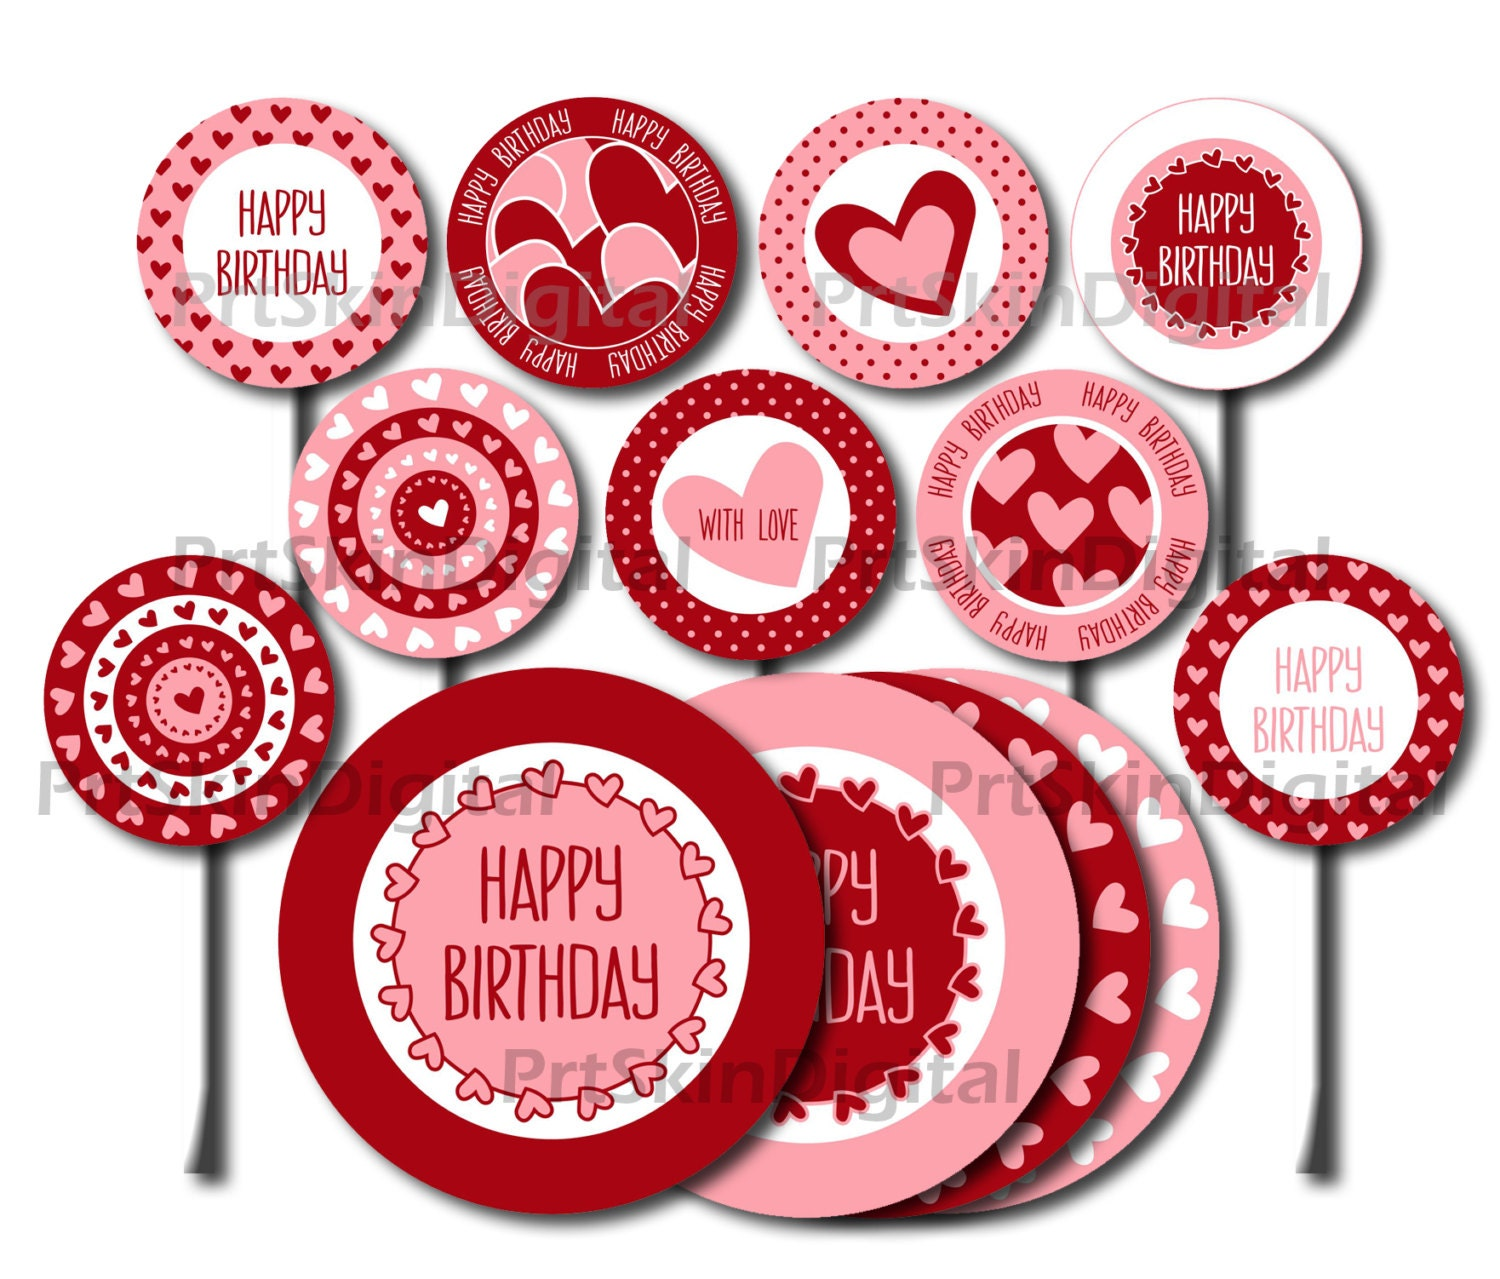 Printable Cake Toppers Happy Birthday Red Pink Hearts & Dots   Etsy